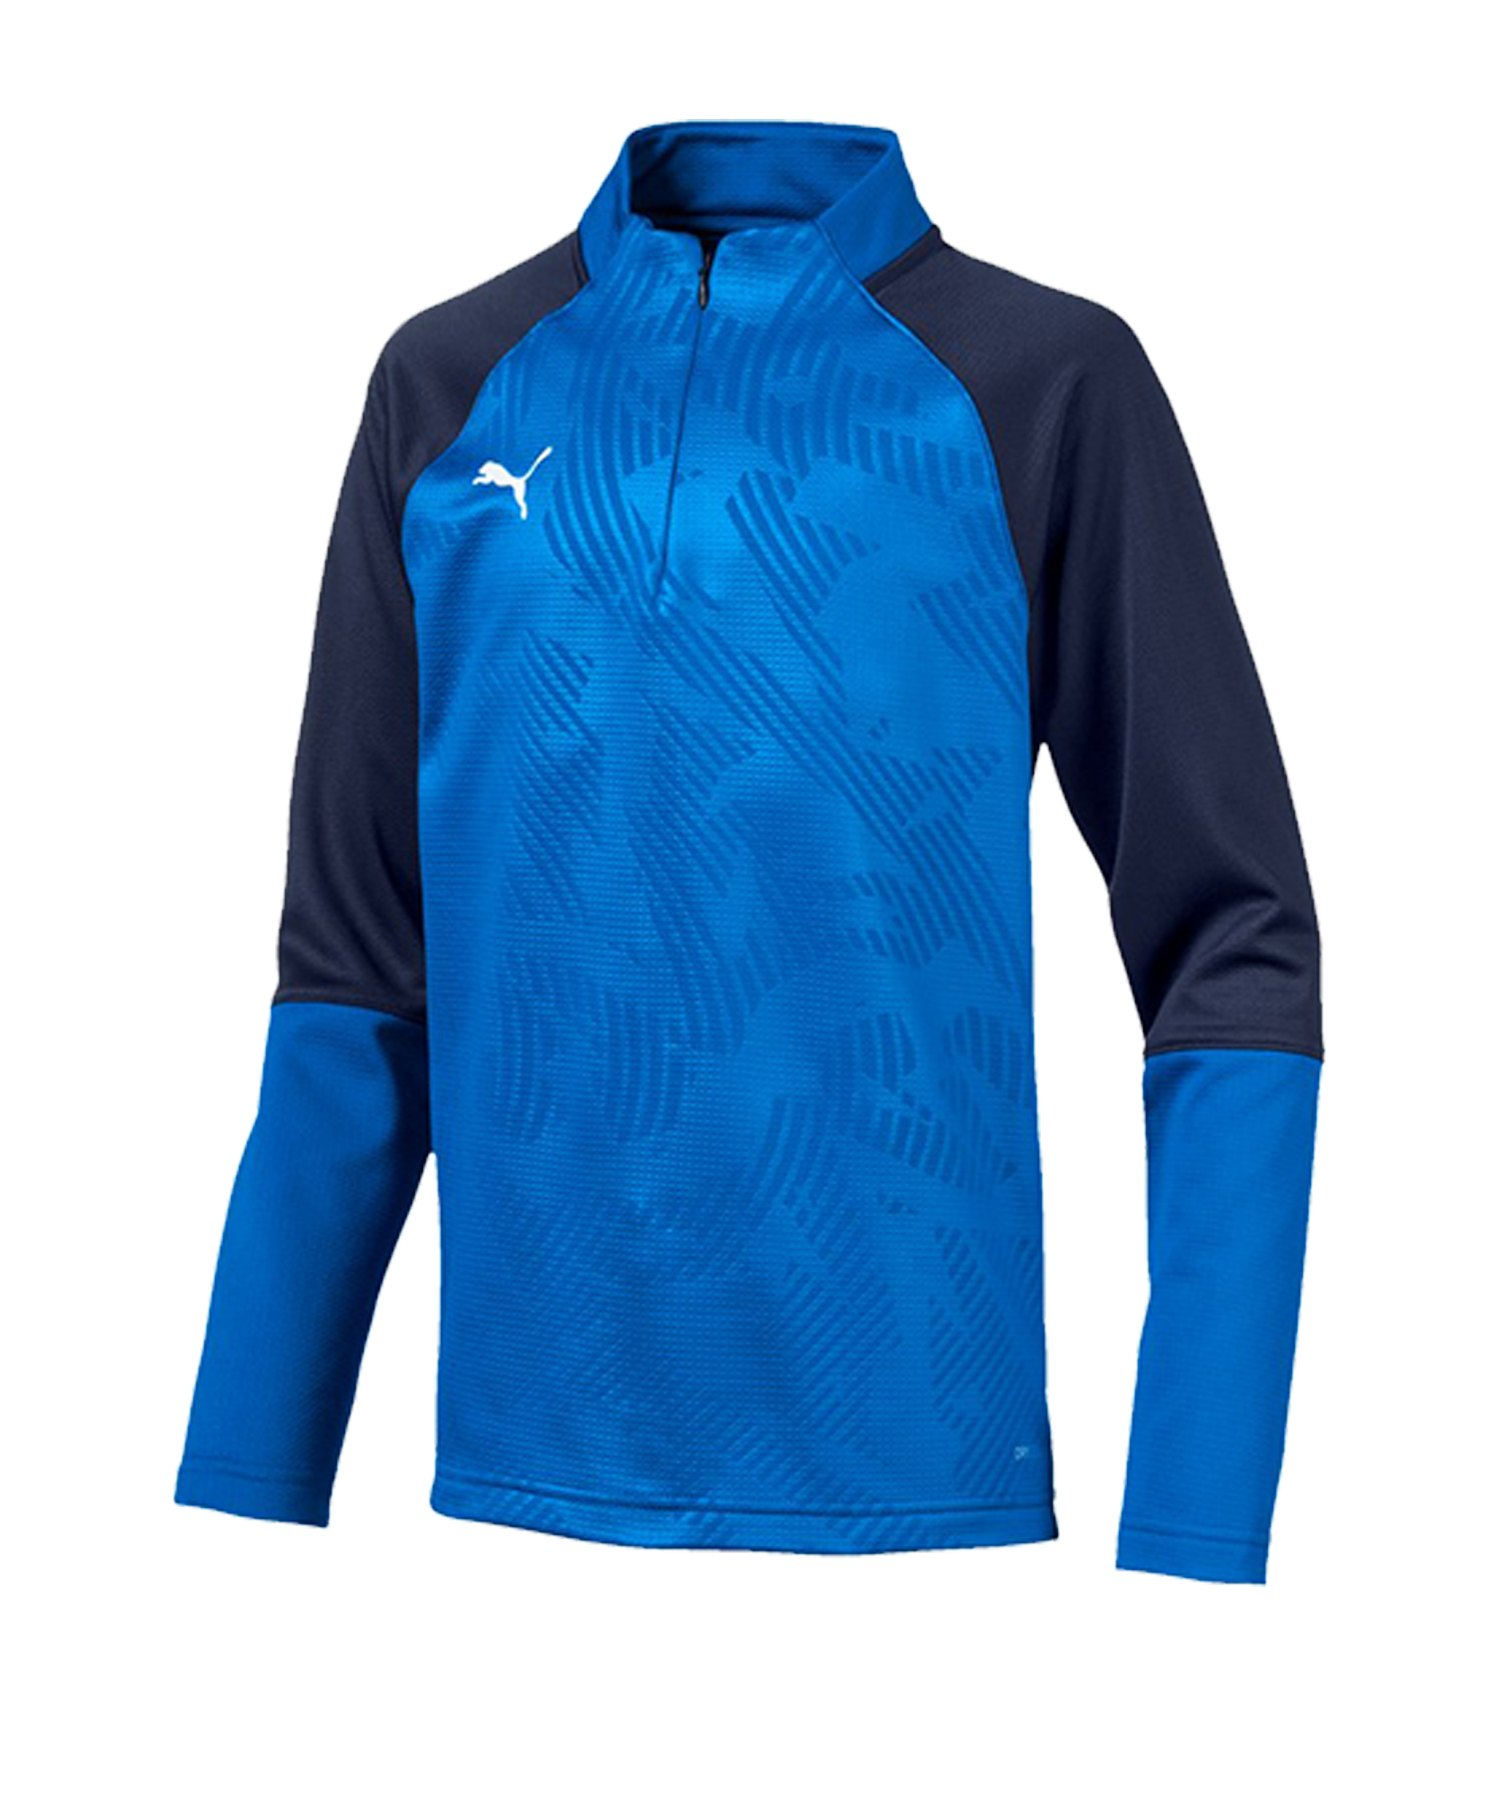 PUMA CUP Training Core 1/4 Zip Top Kids Blau F02 - blau